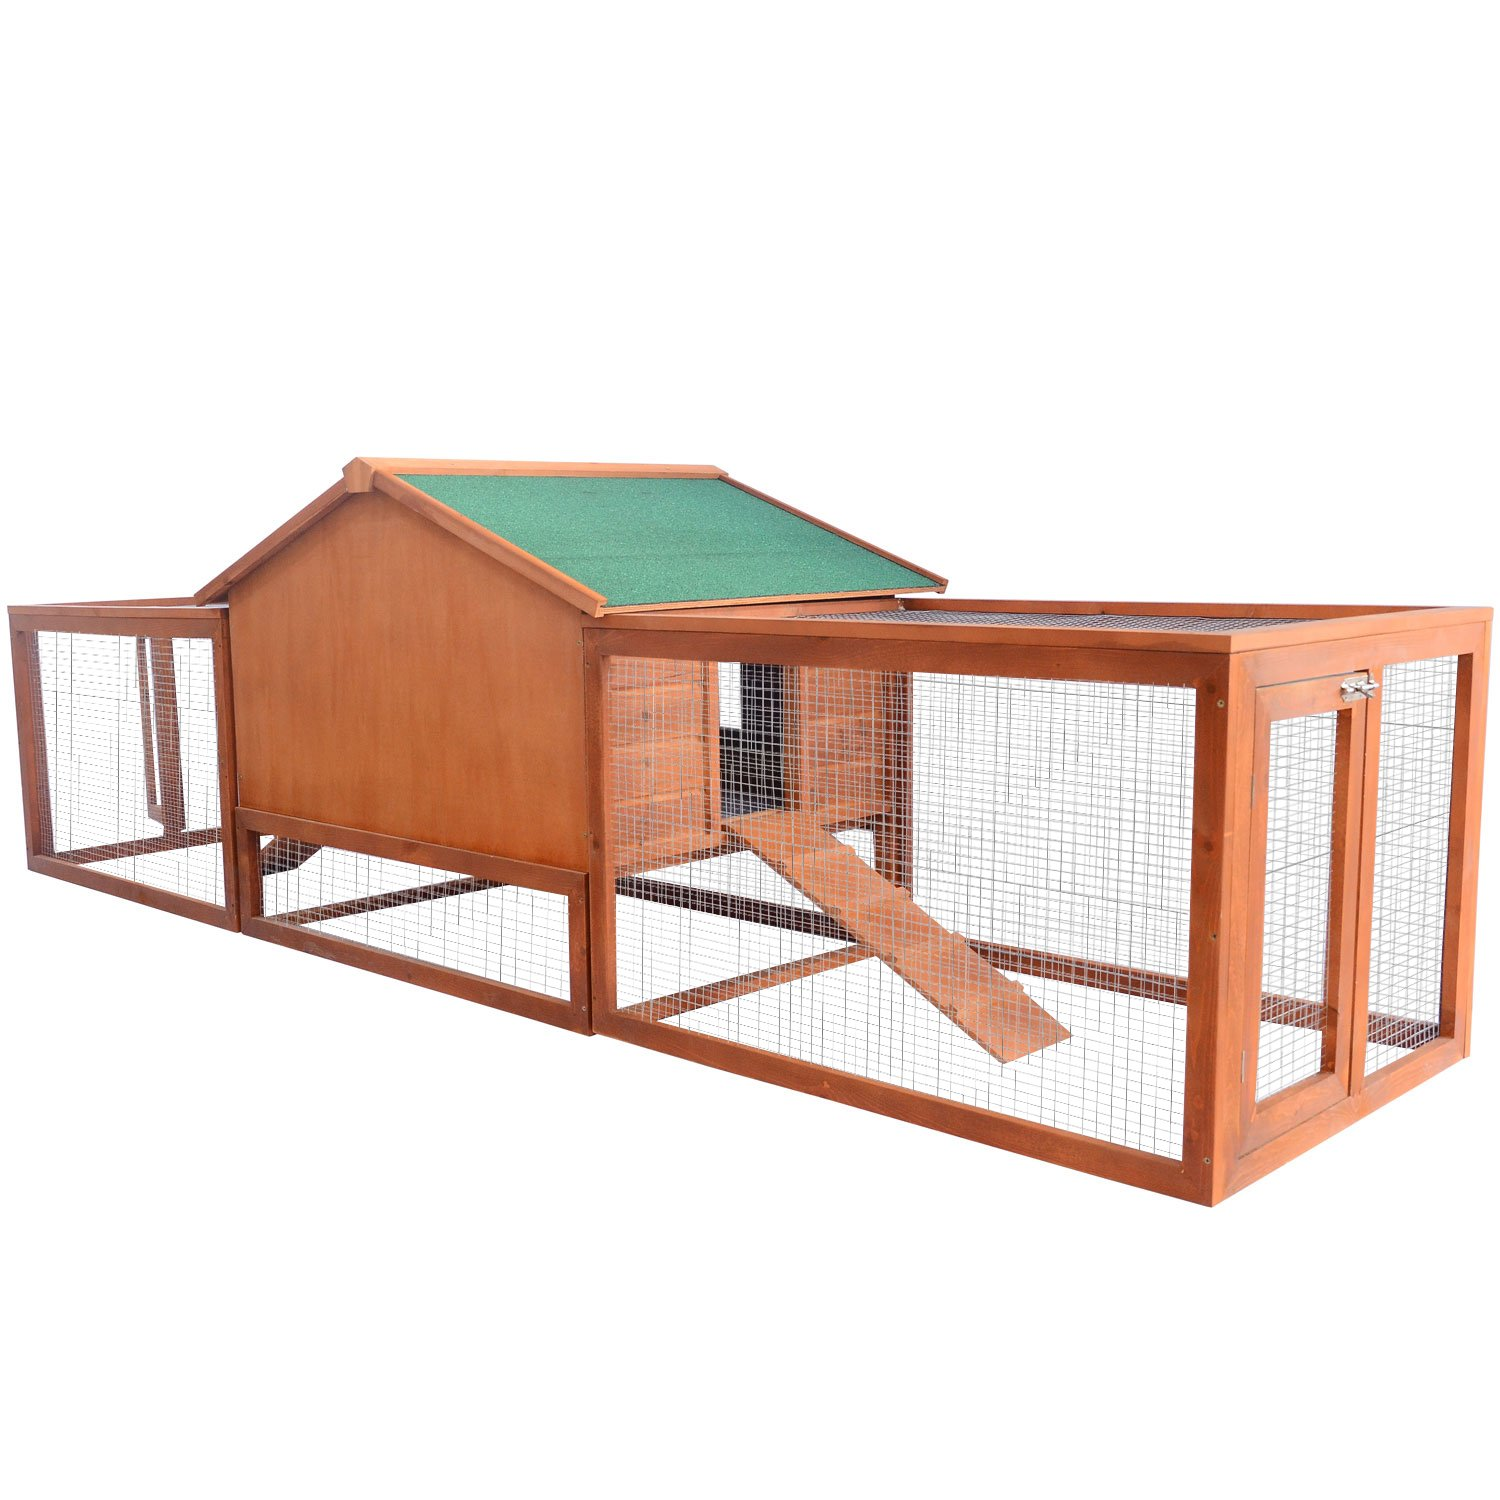 pet pawhut itm run for rabbit wooden hutch hutches bunny sale cage with elevated outdoor house handmade